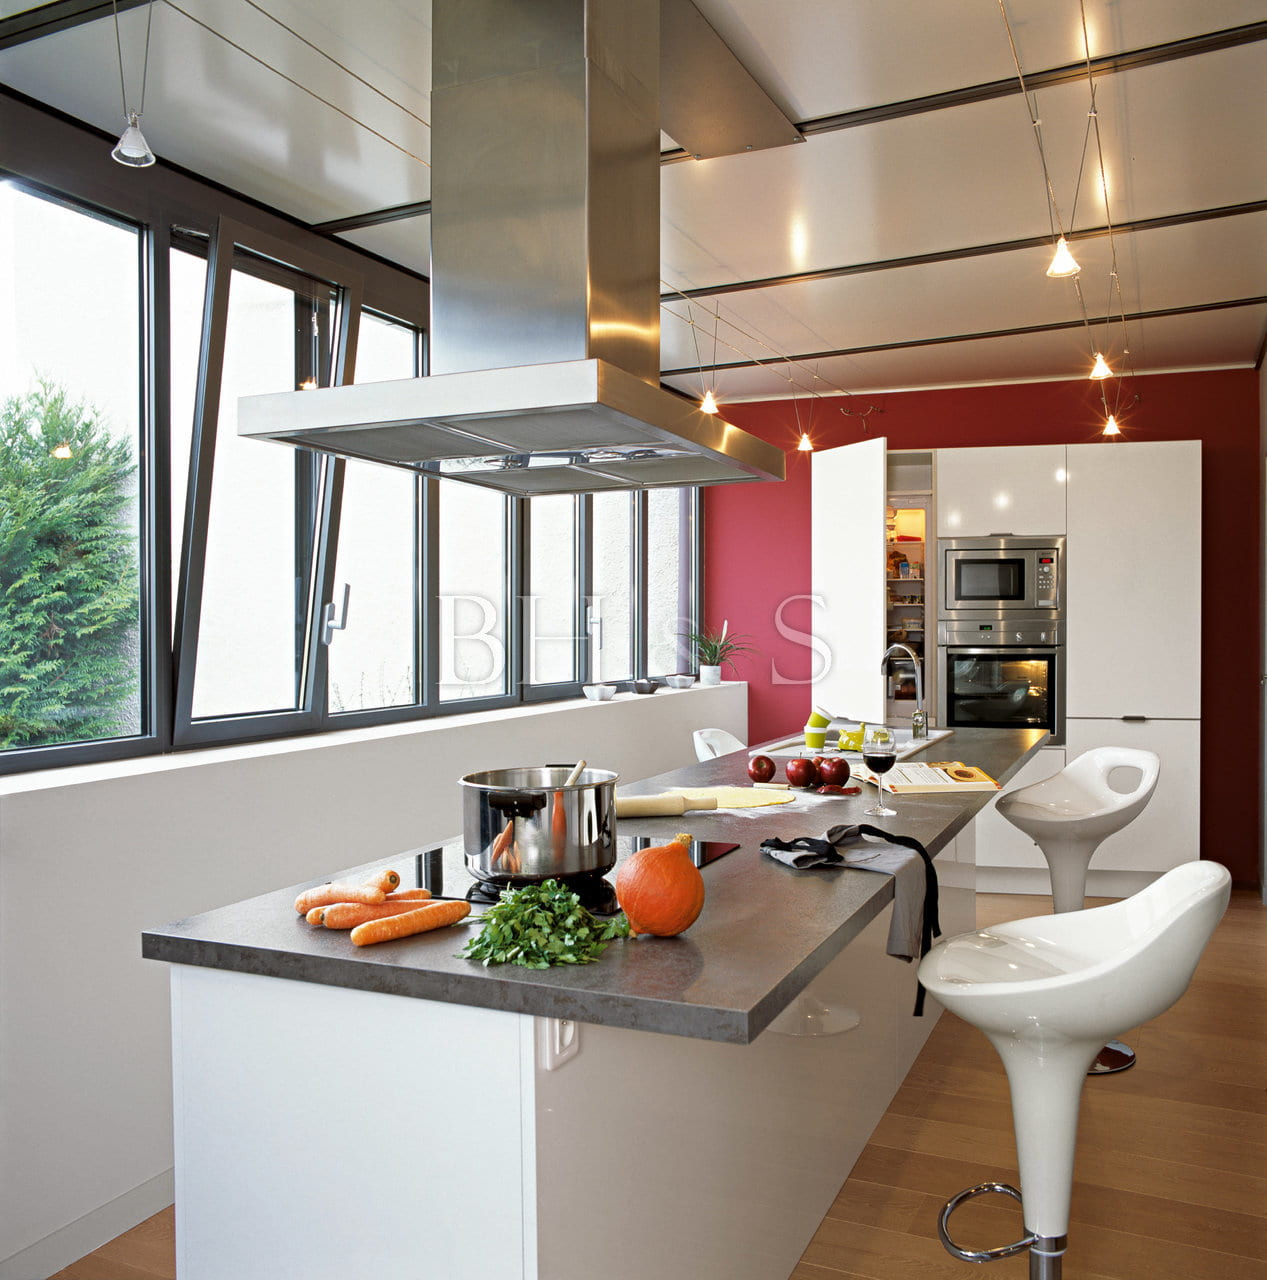 INTERIOR ARCHITECTURE PROJECT - NEW BUILT KITCHEN - MEURSAULT